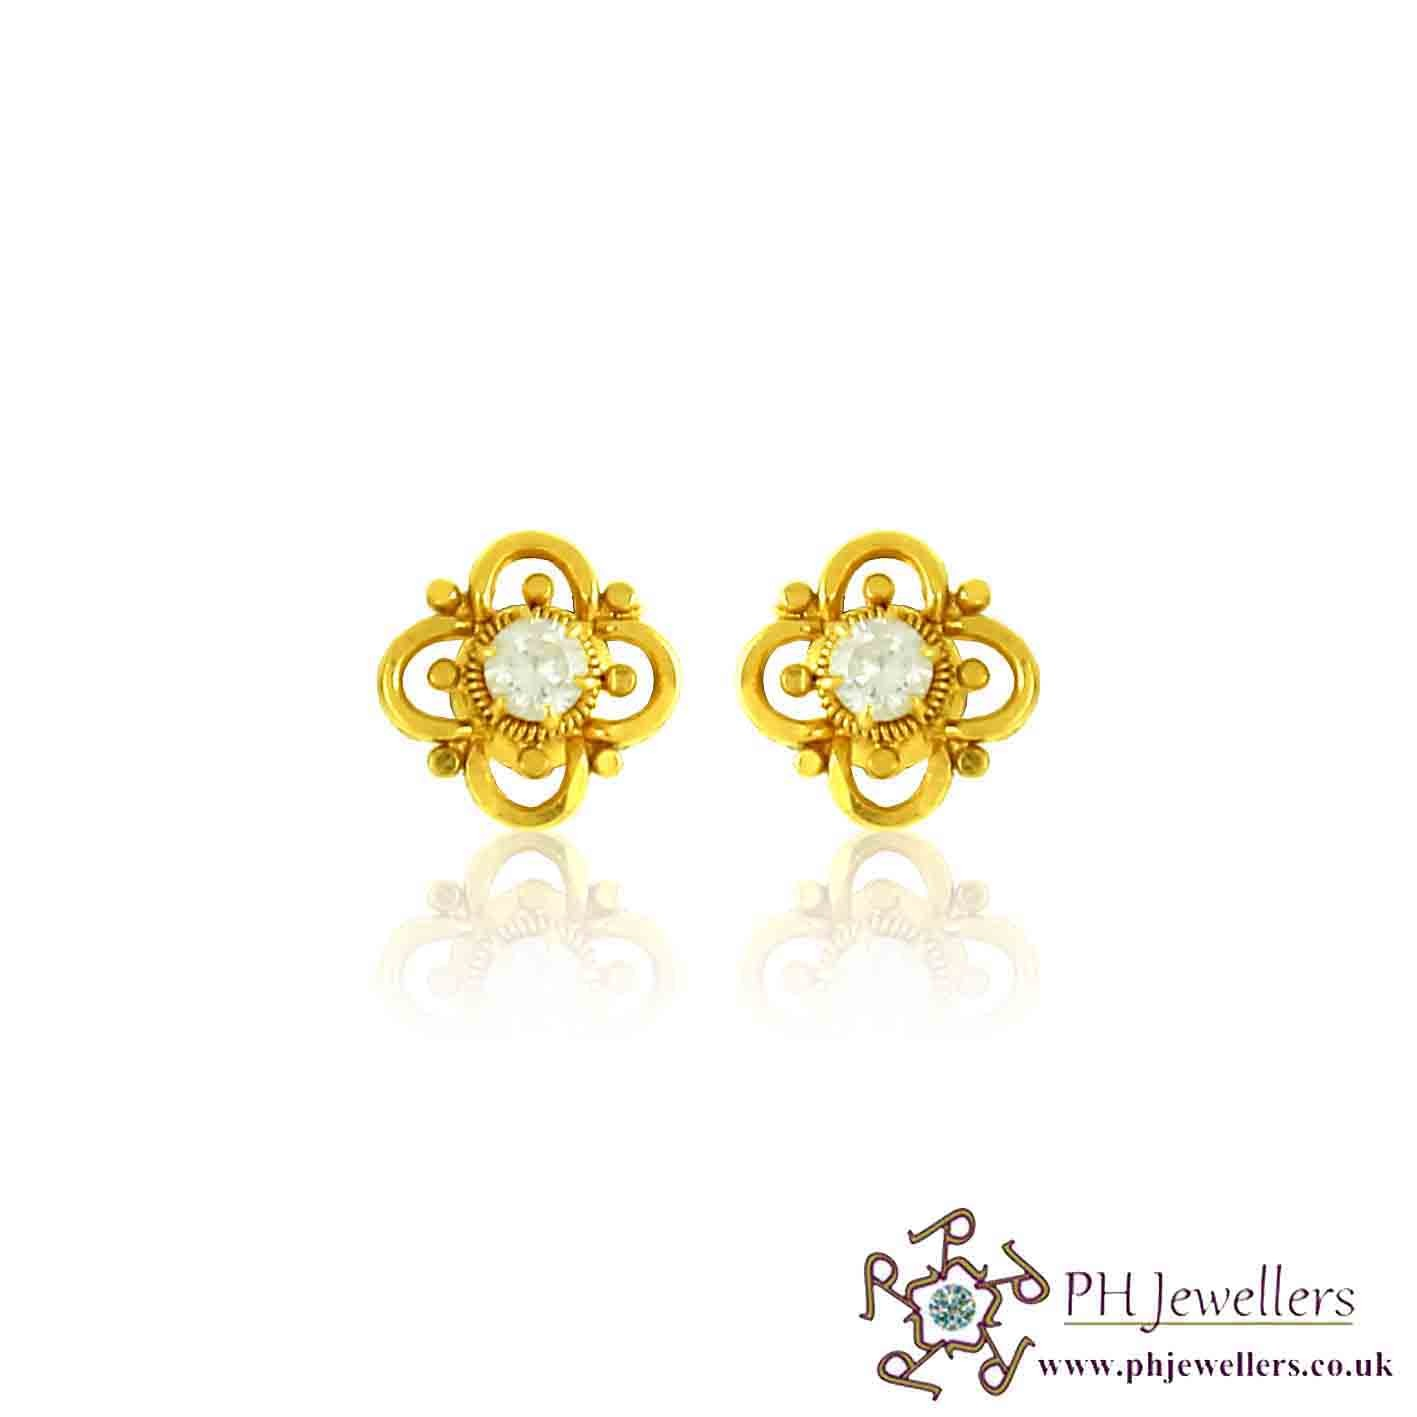 22CT 916 Yellow Gold Earring CZ SE59